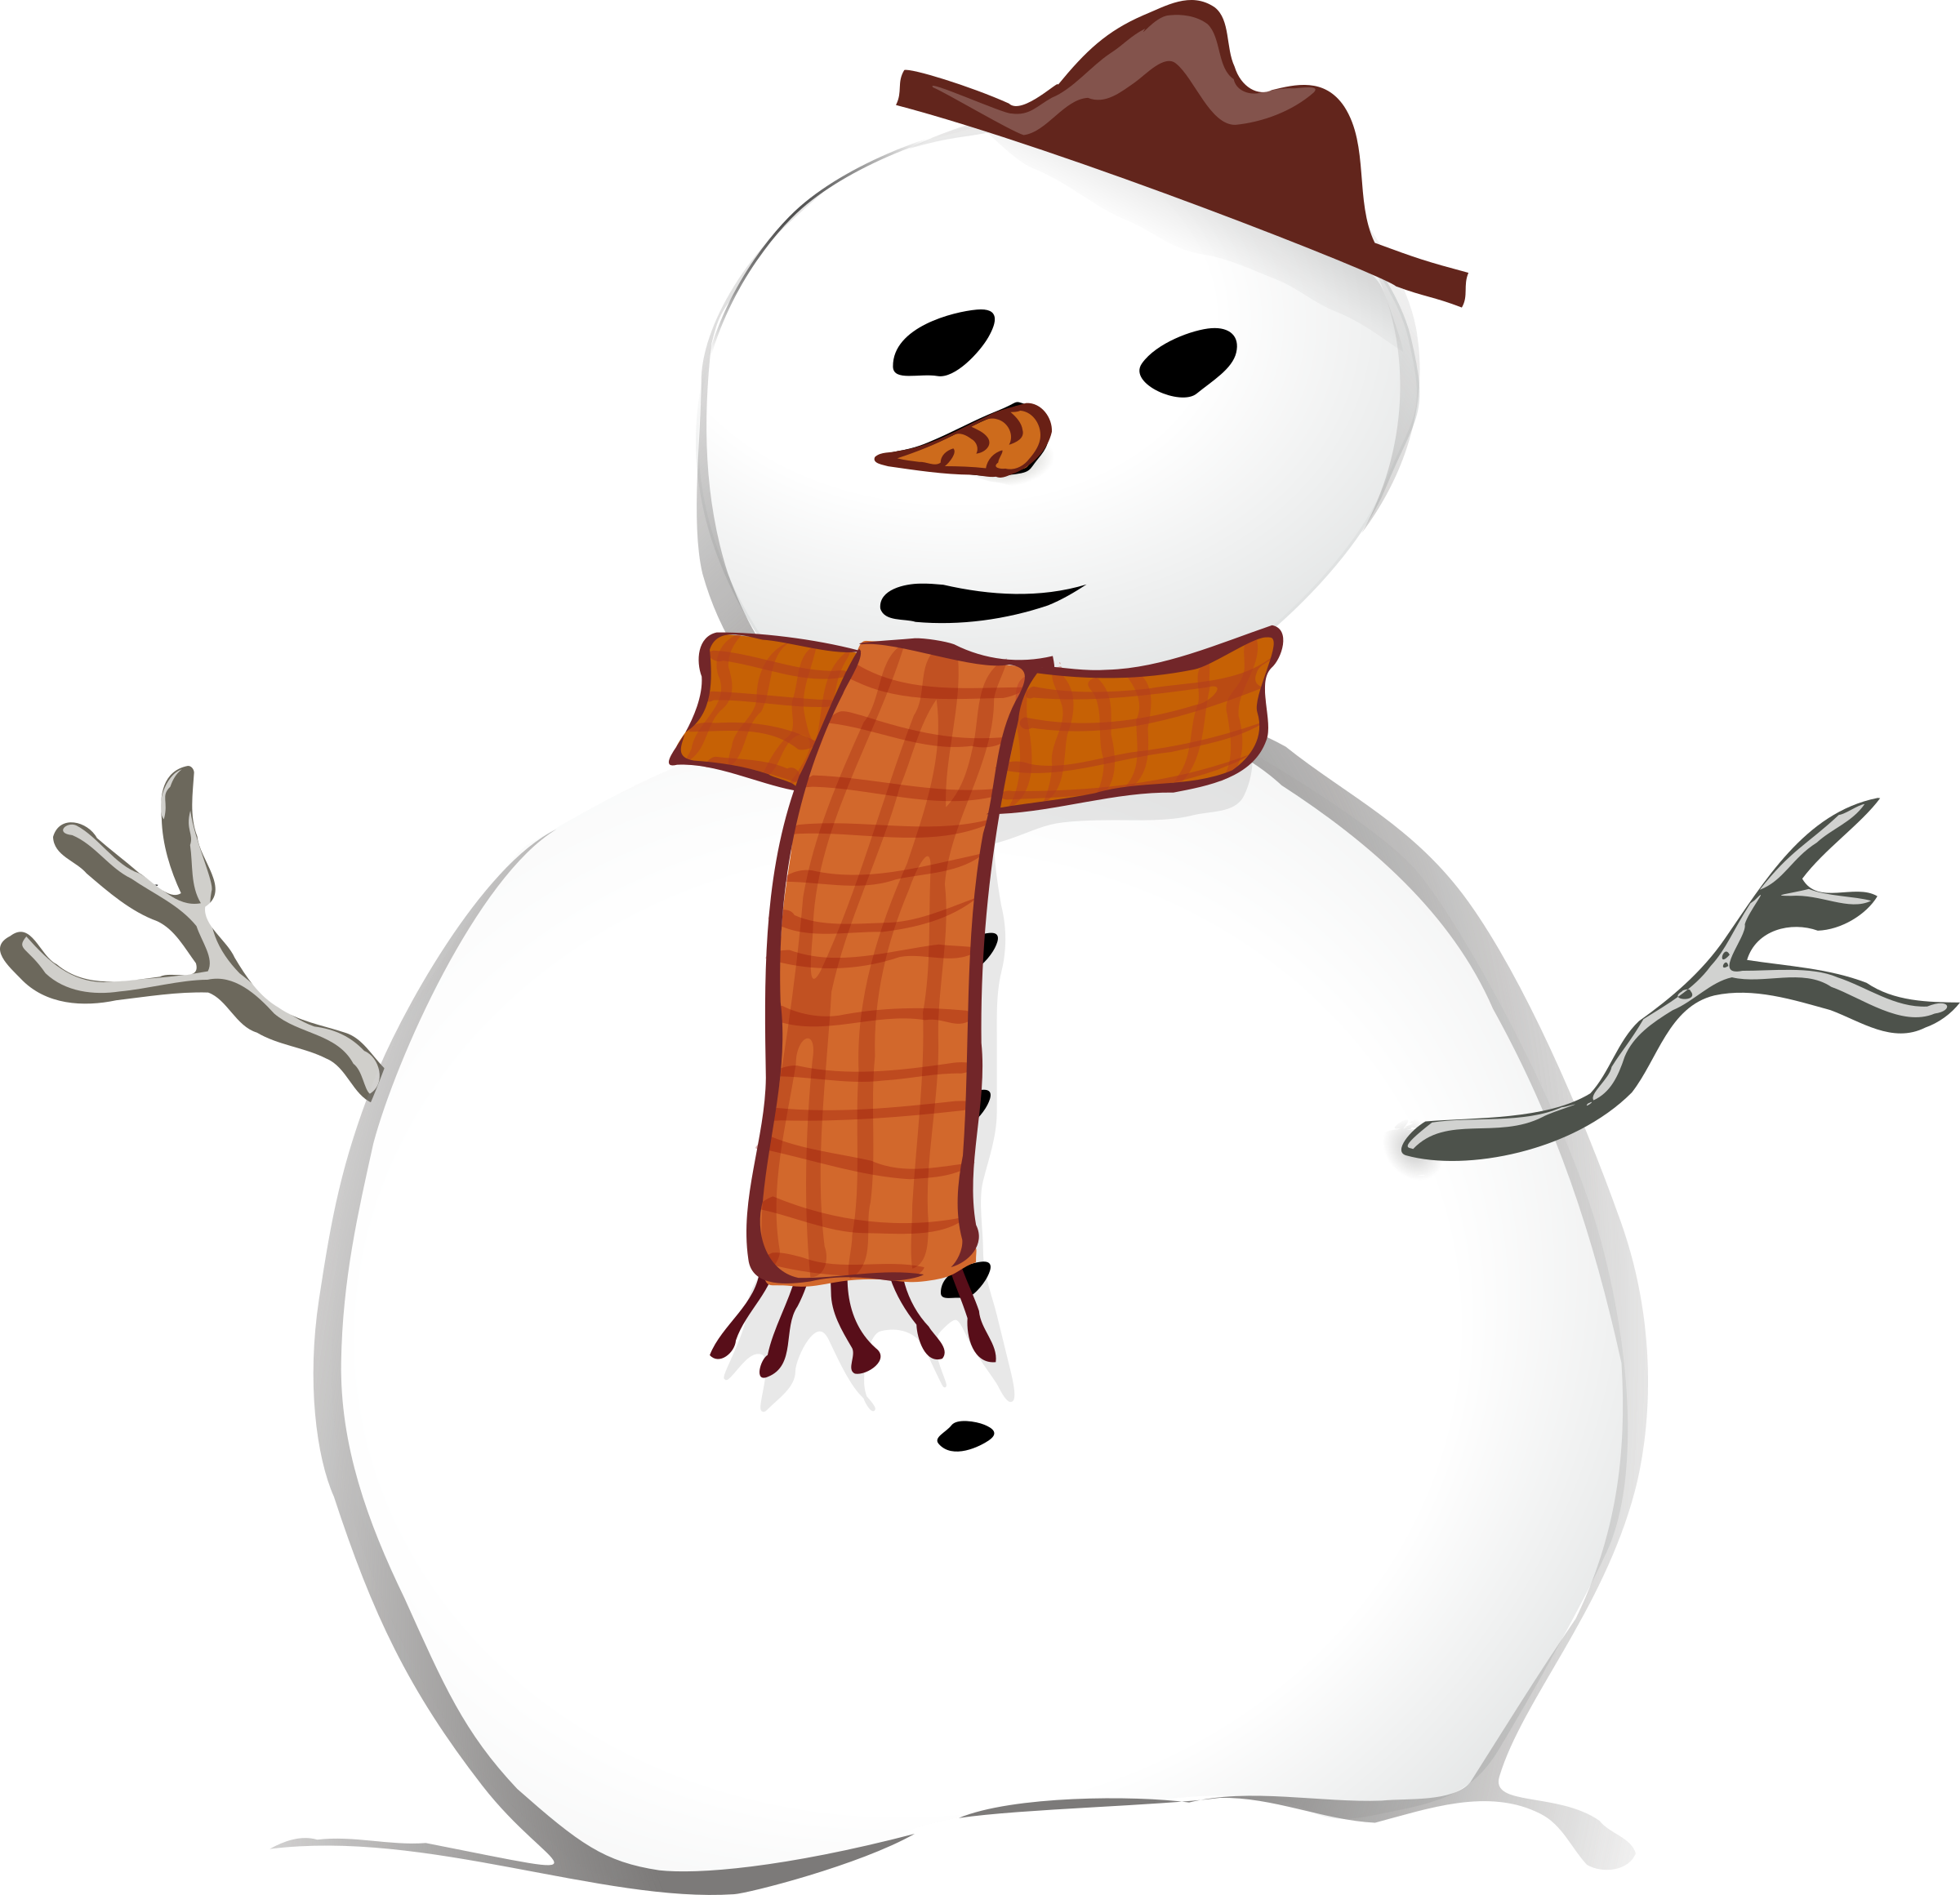 Snowman by TheresaKnott